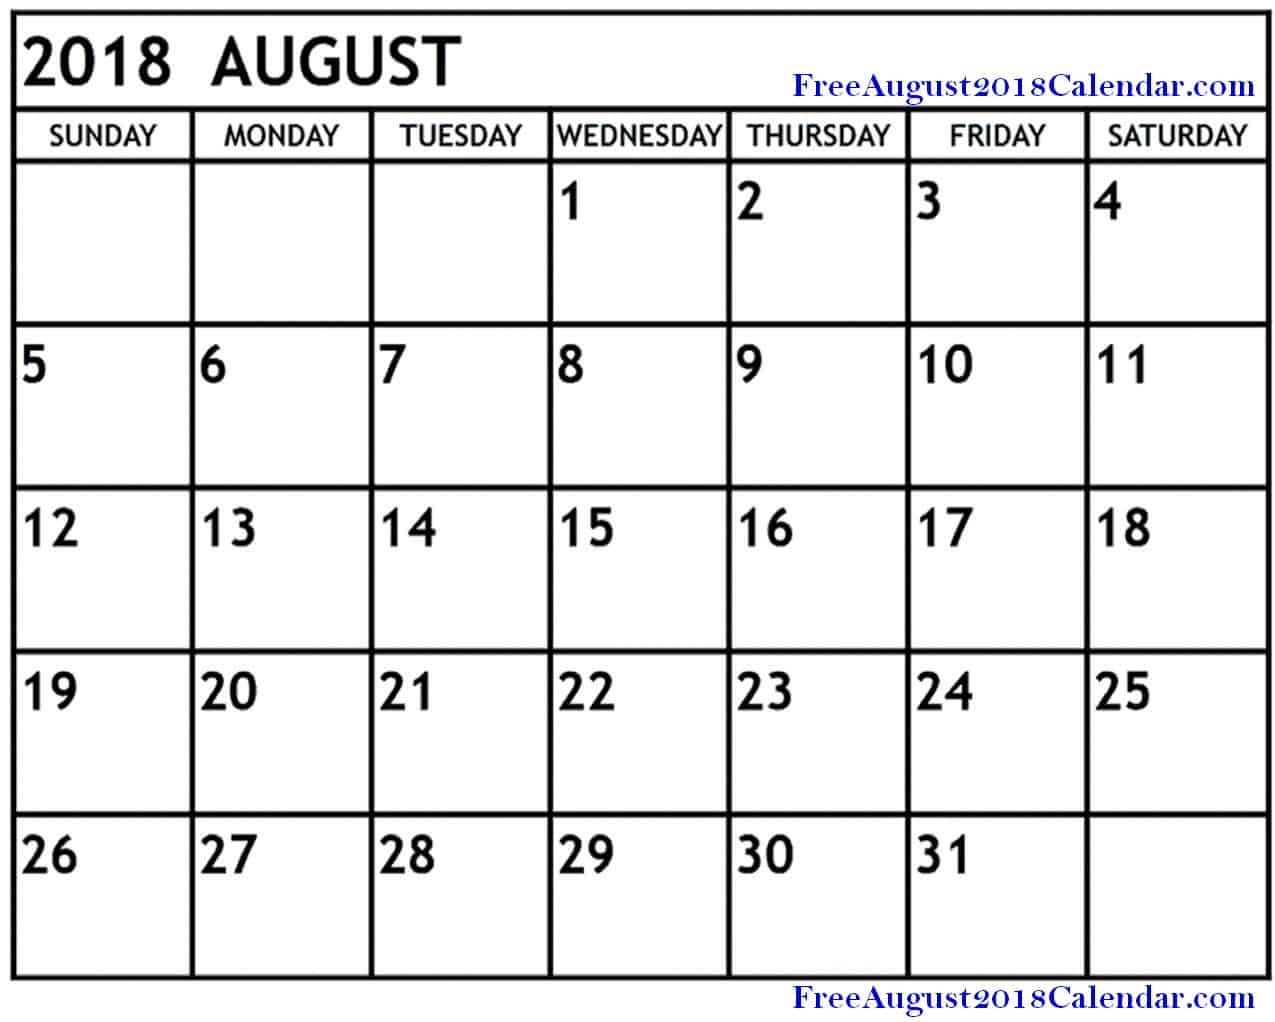 Printable Calendar for August 2018 Templates